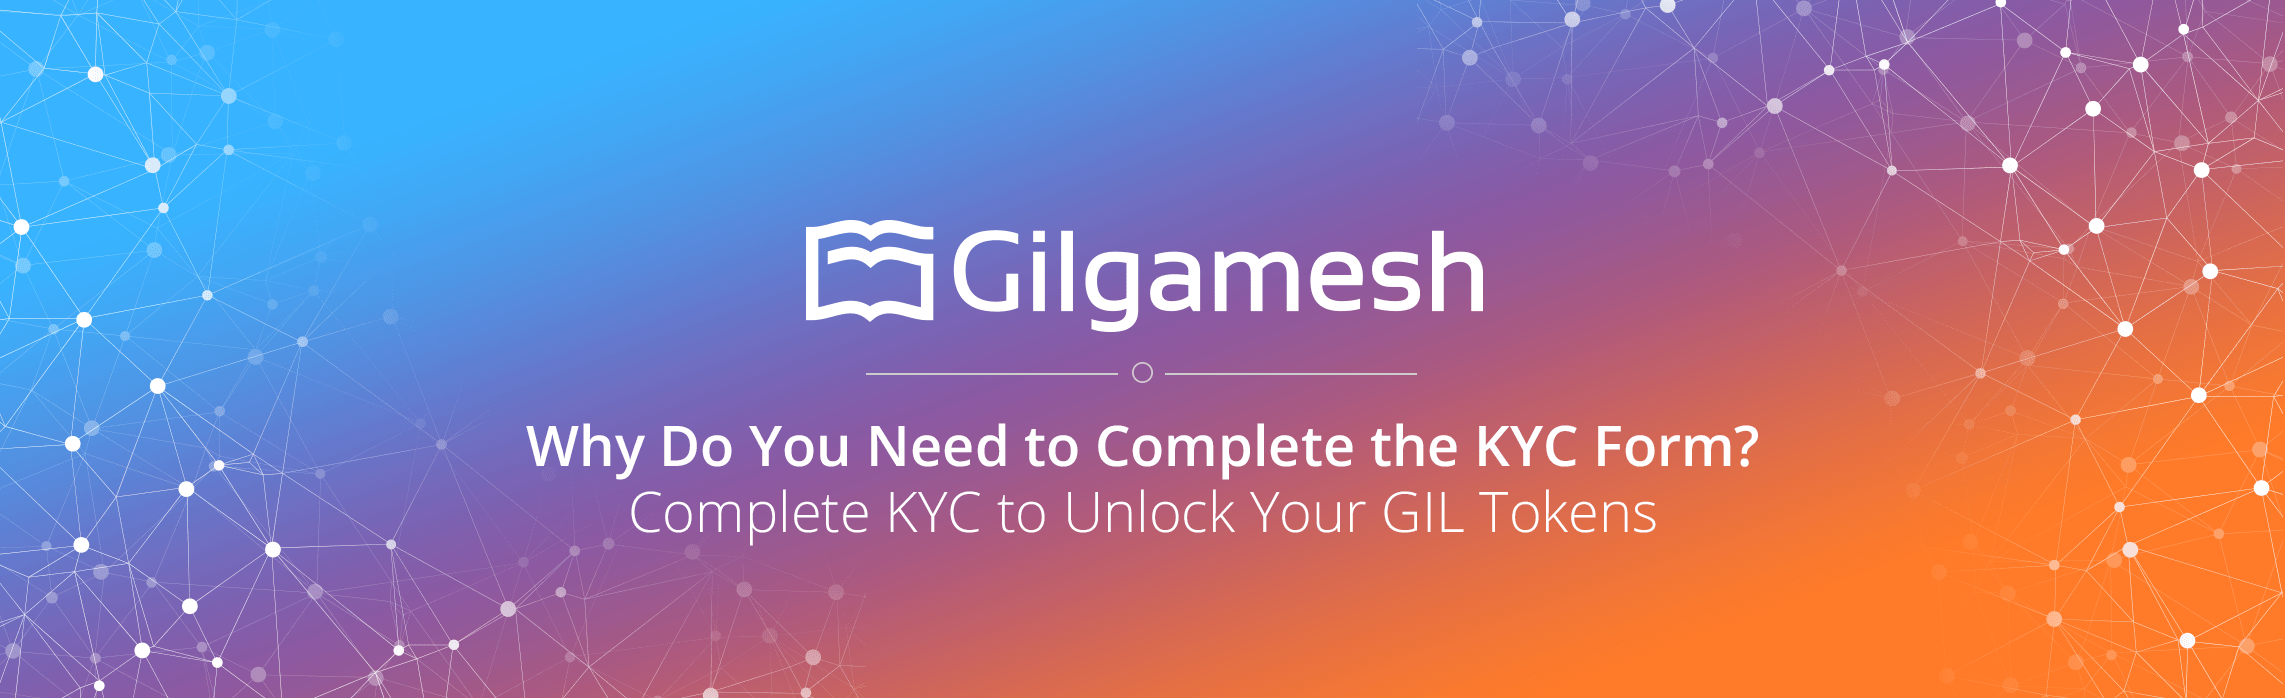 Why Do You Need to Complete the KYC Form? - Gilgamesh